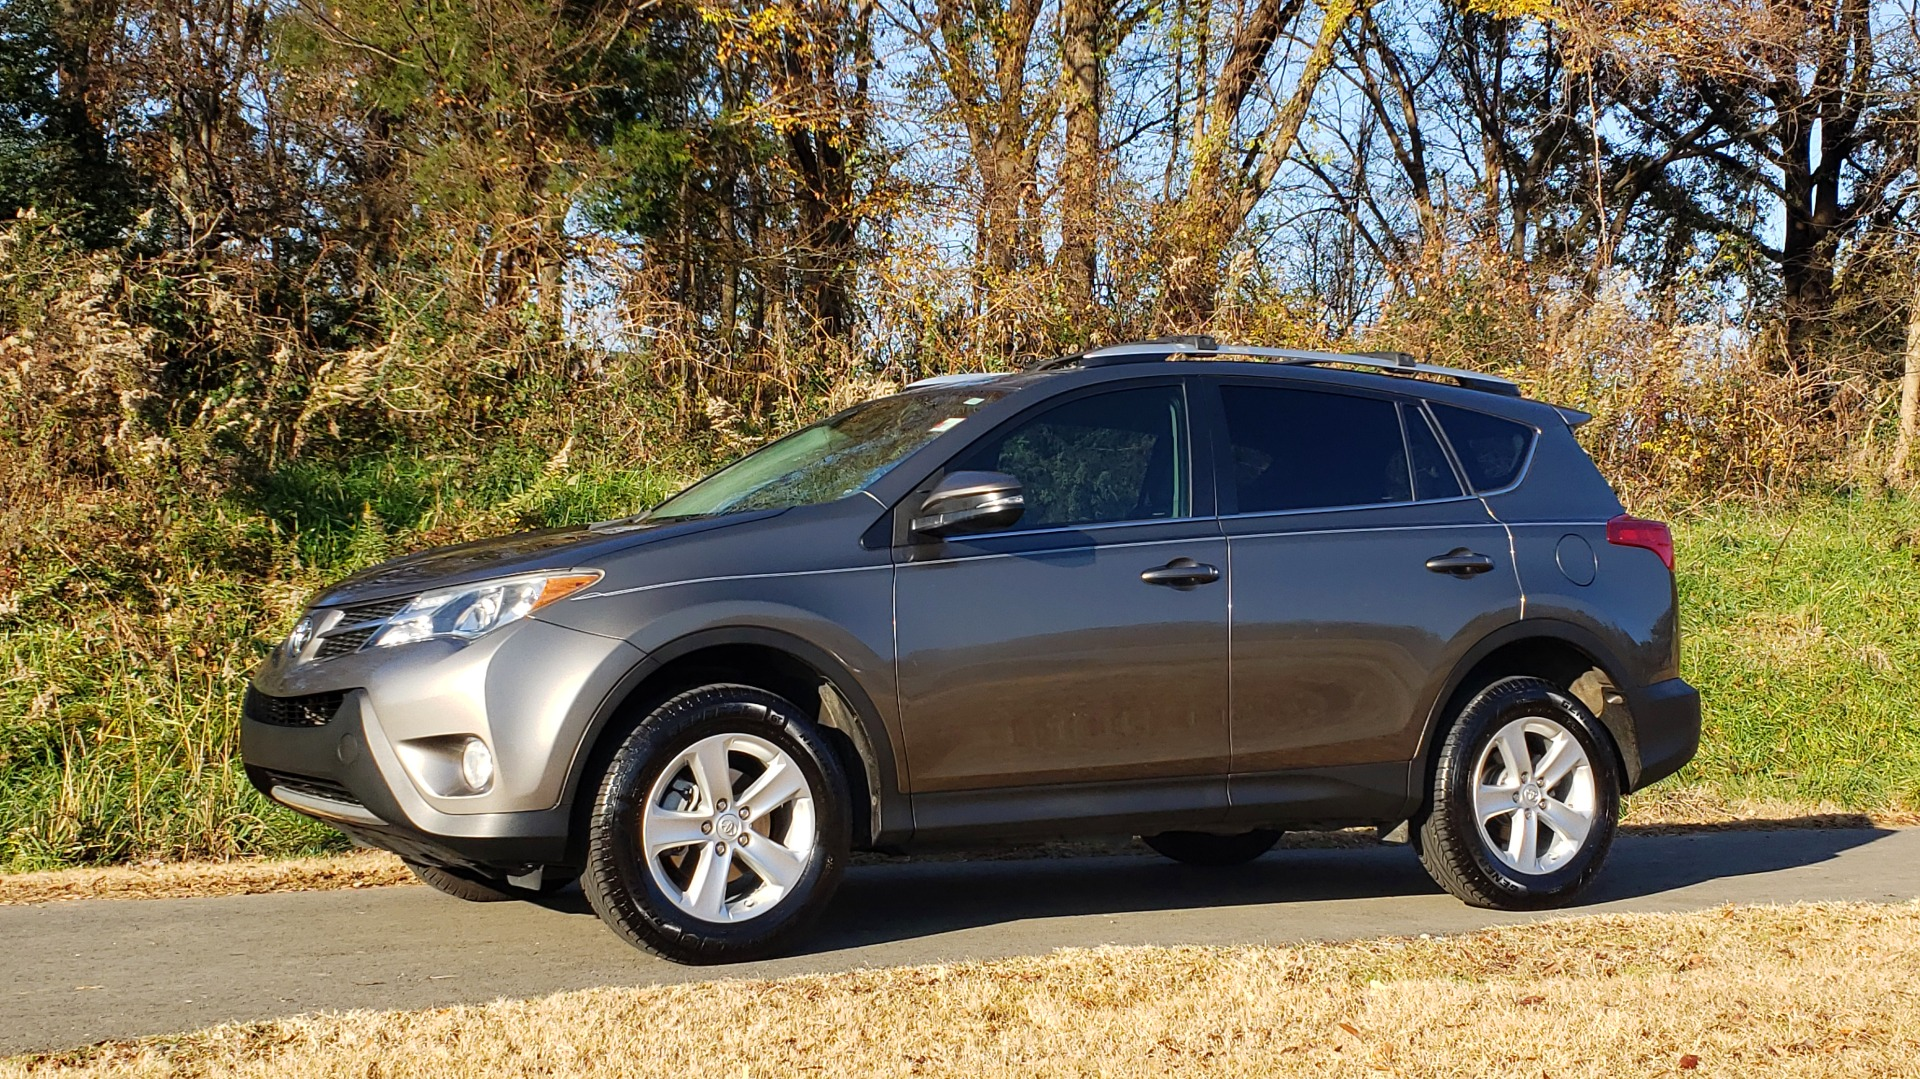 Used 2014 Toyota RAV4 XLE / FWD / 2.5L 4-CYL / 6-SPD AUTO / 17IN ALLOY / REARVIEW for sale $13,695 at Formula Imports in Charlotte NC 28227 2